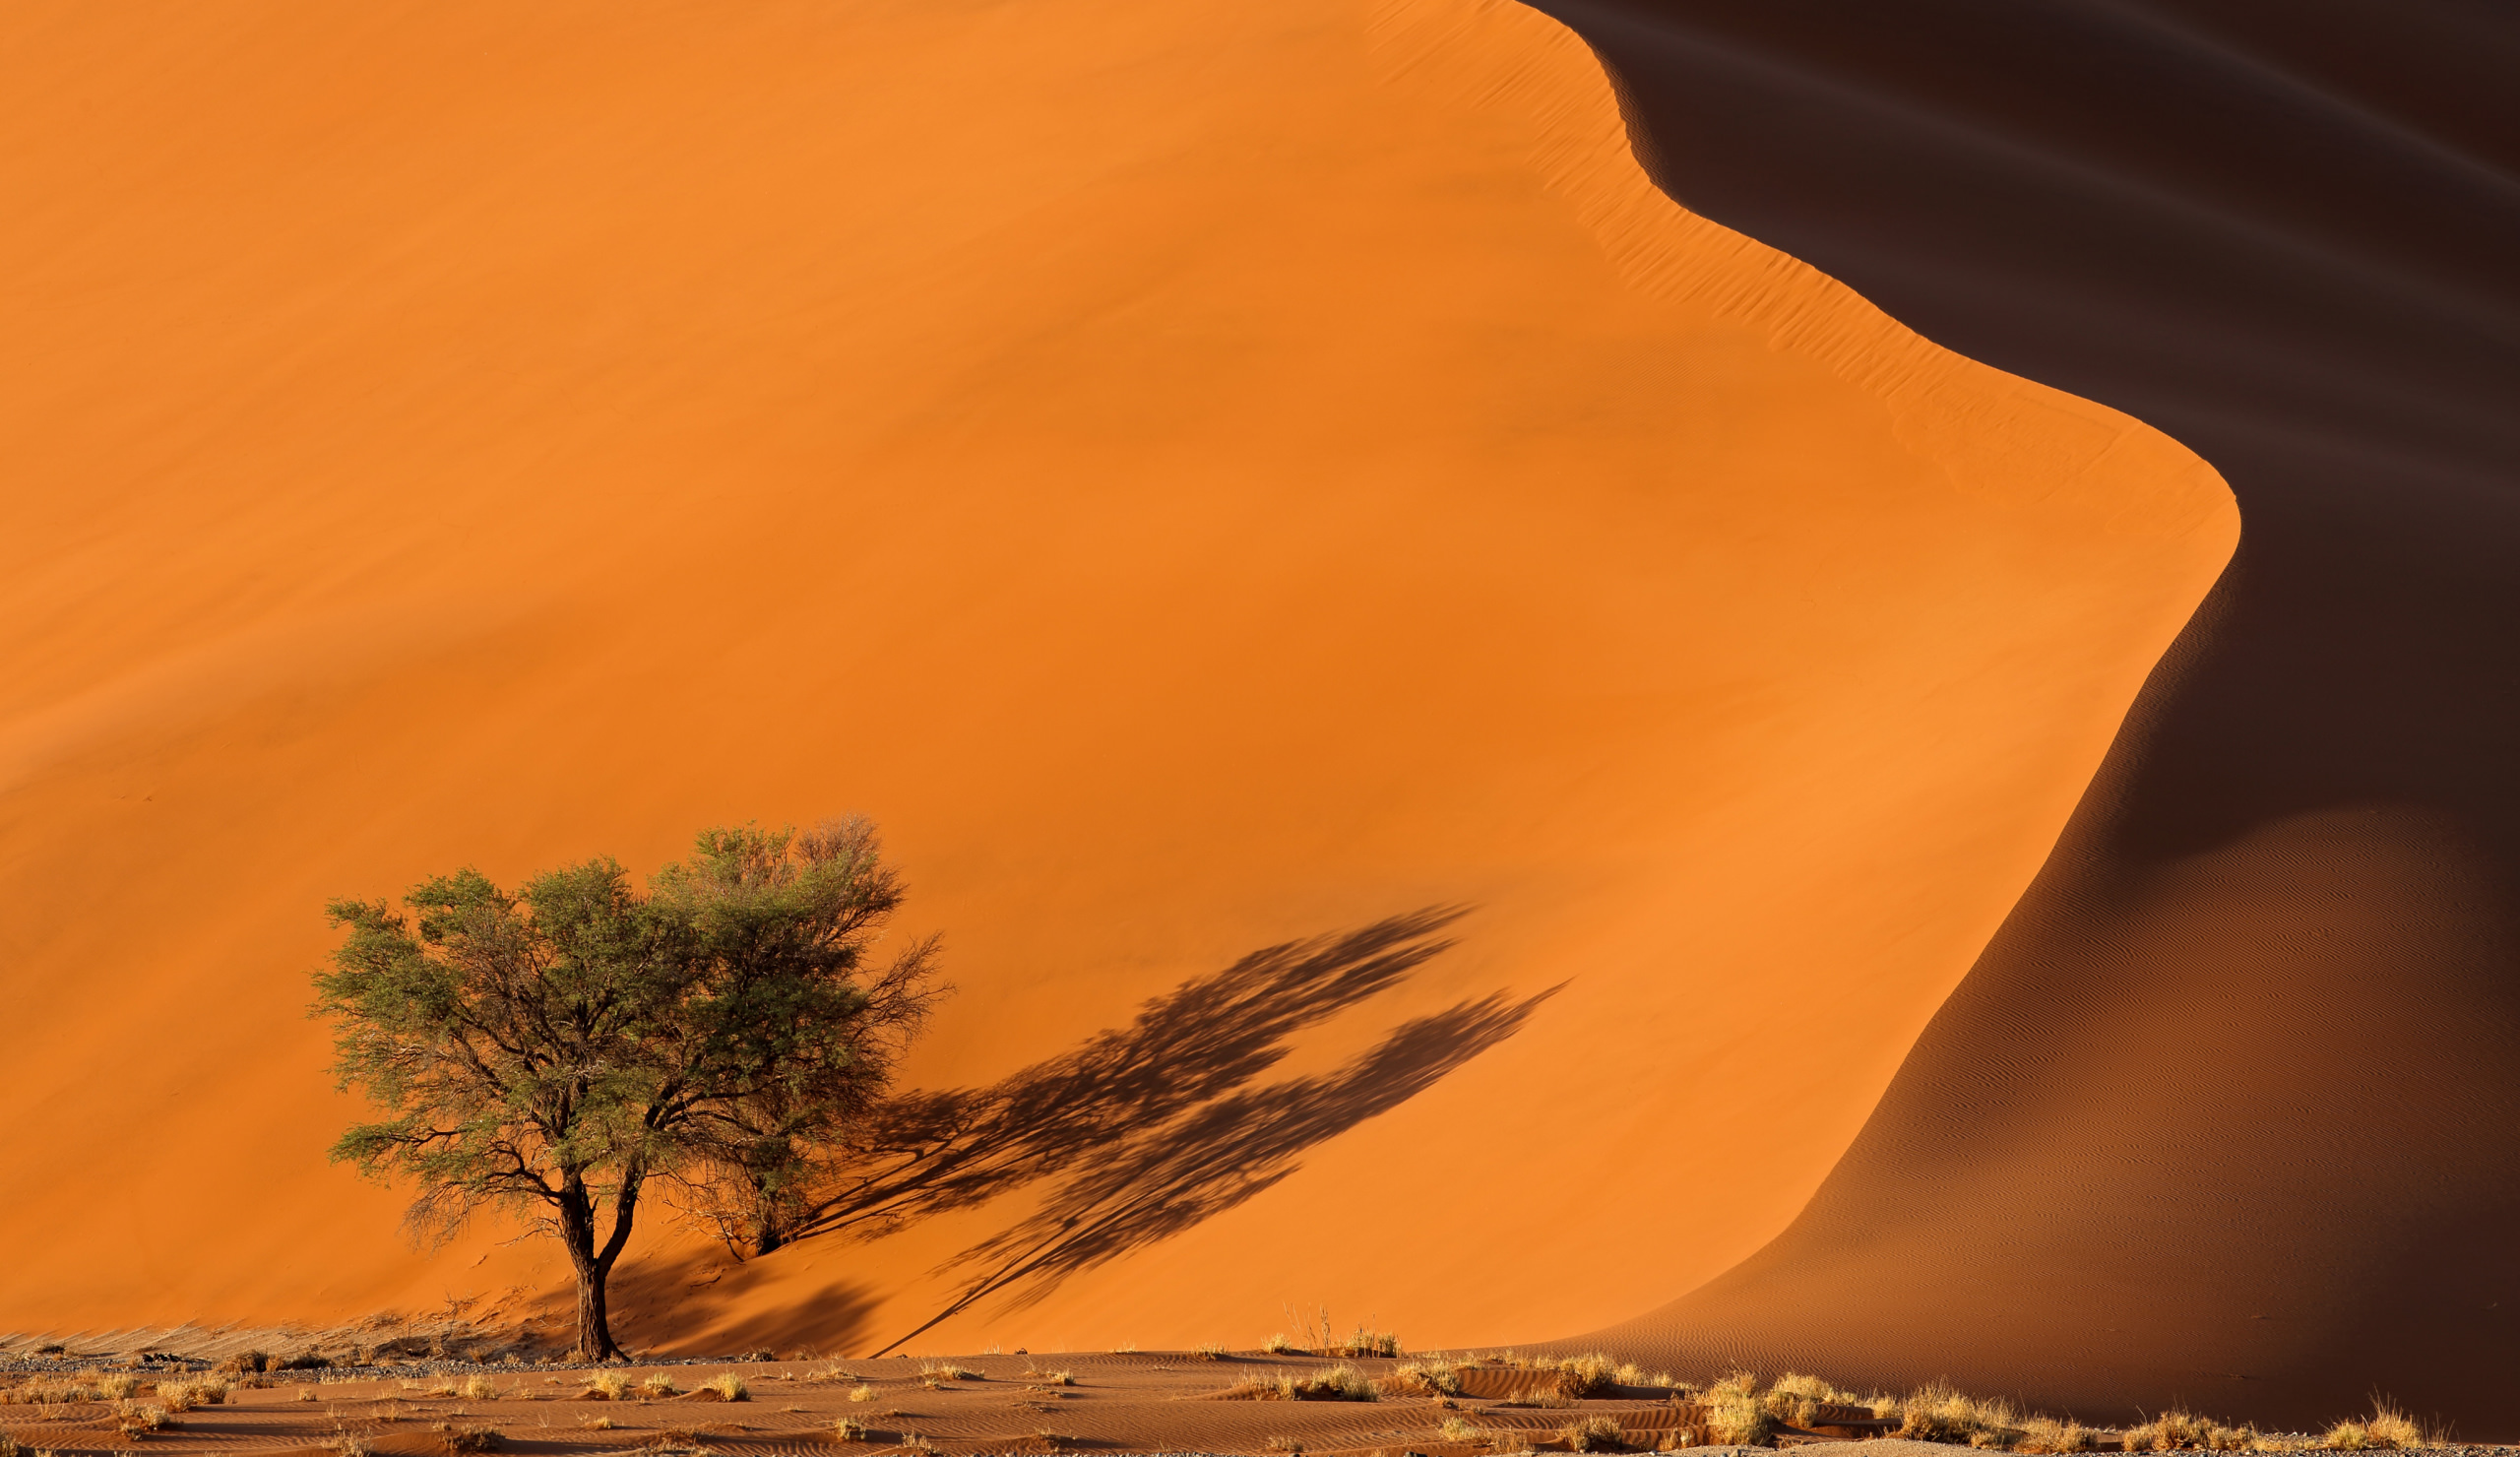 Desert landscape from Namibia with copyspace